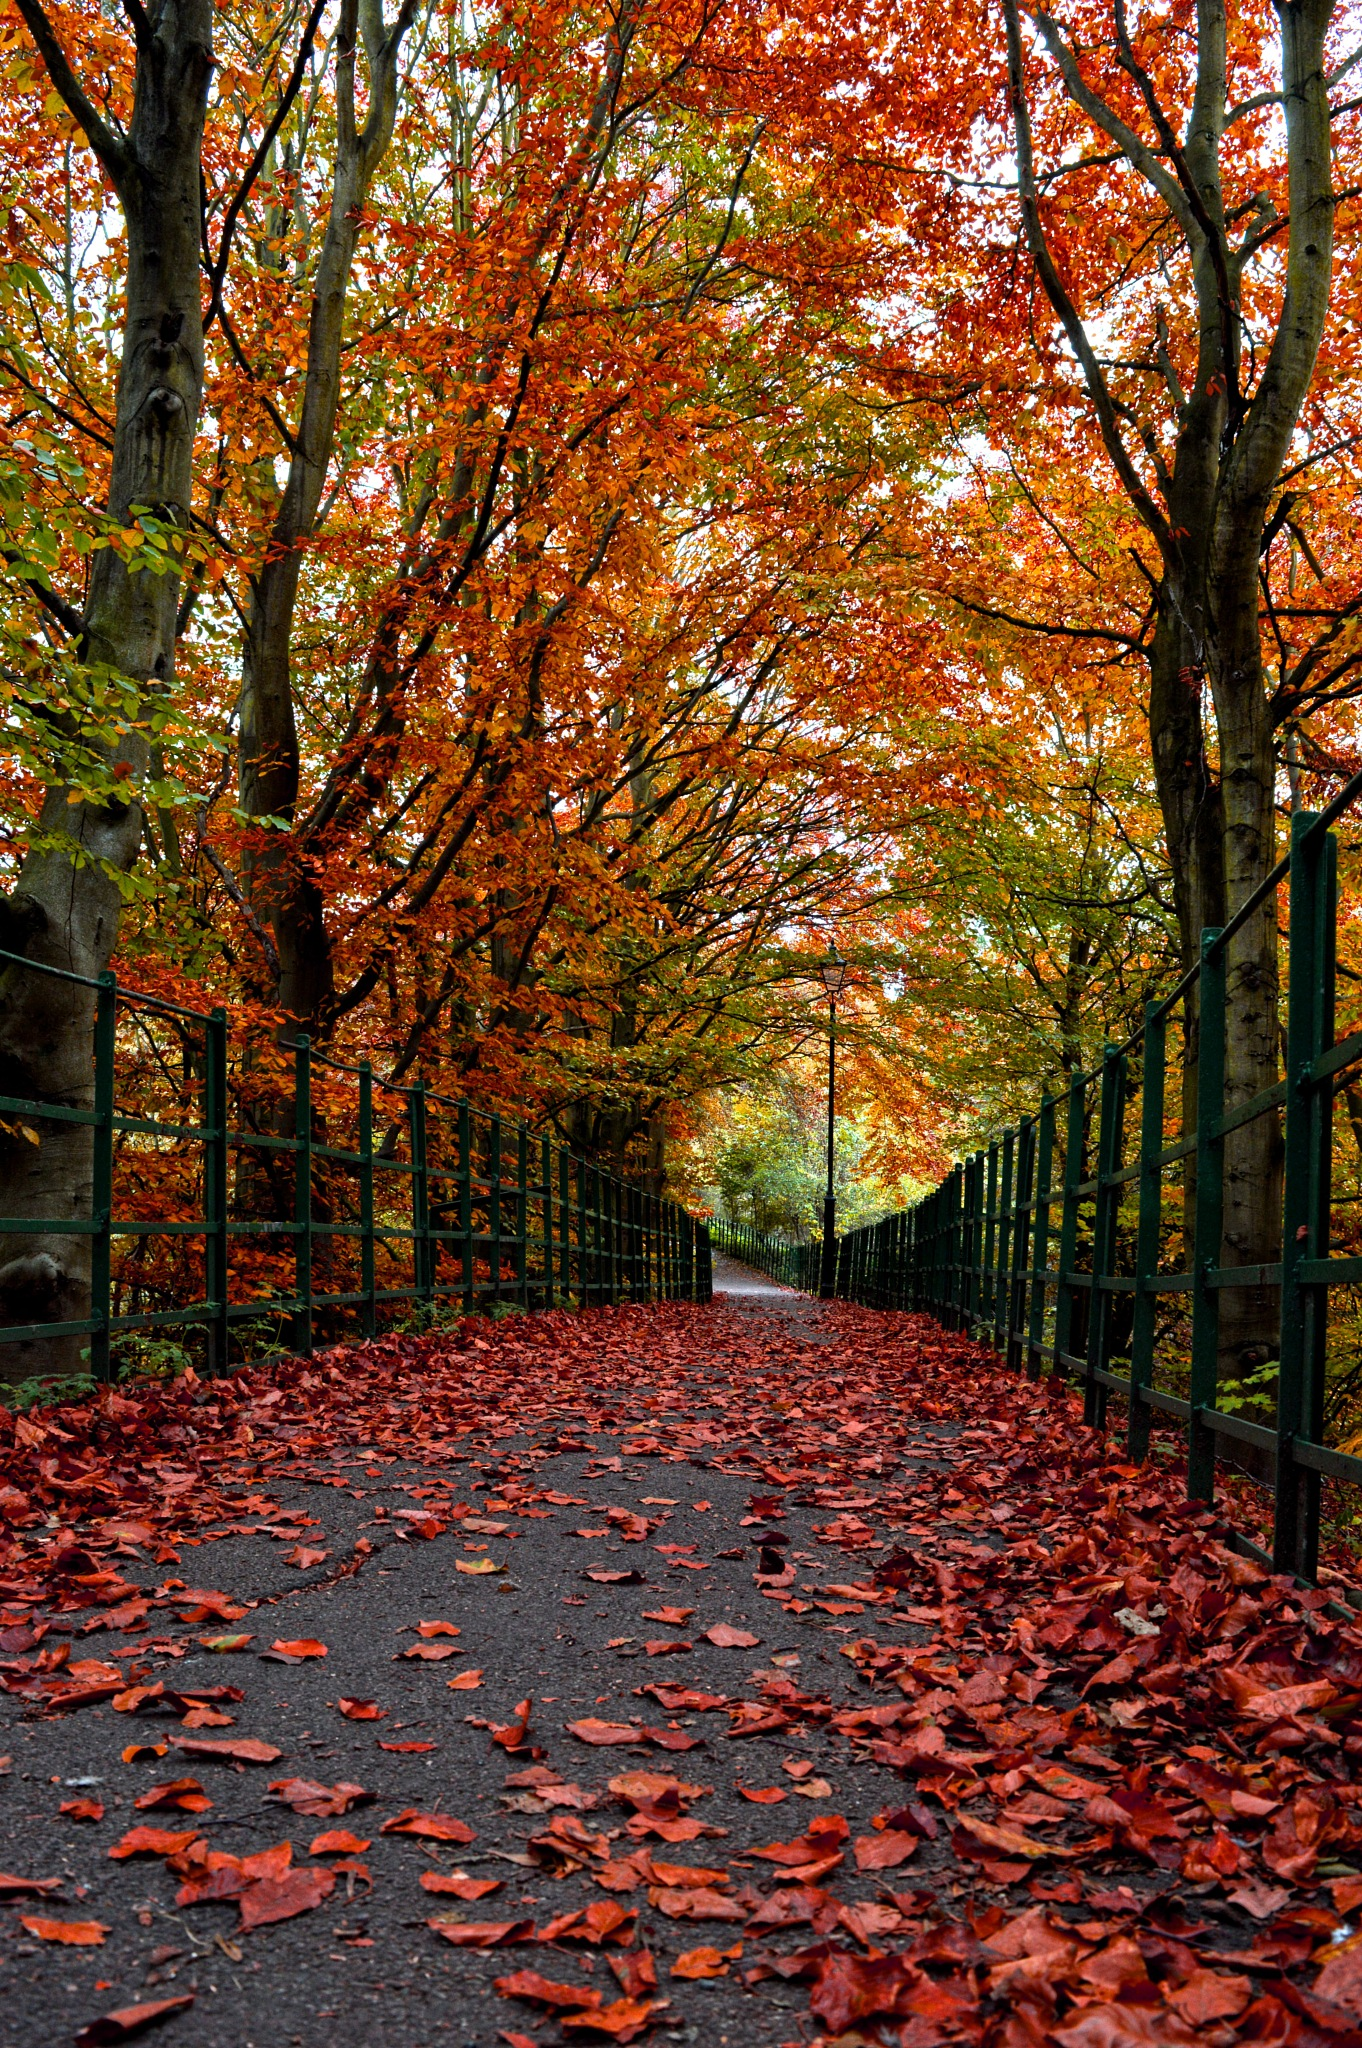 A Red Tinted Autumn by Mark Pemberton